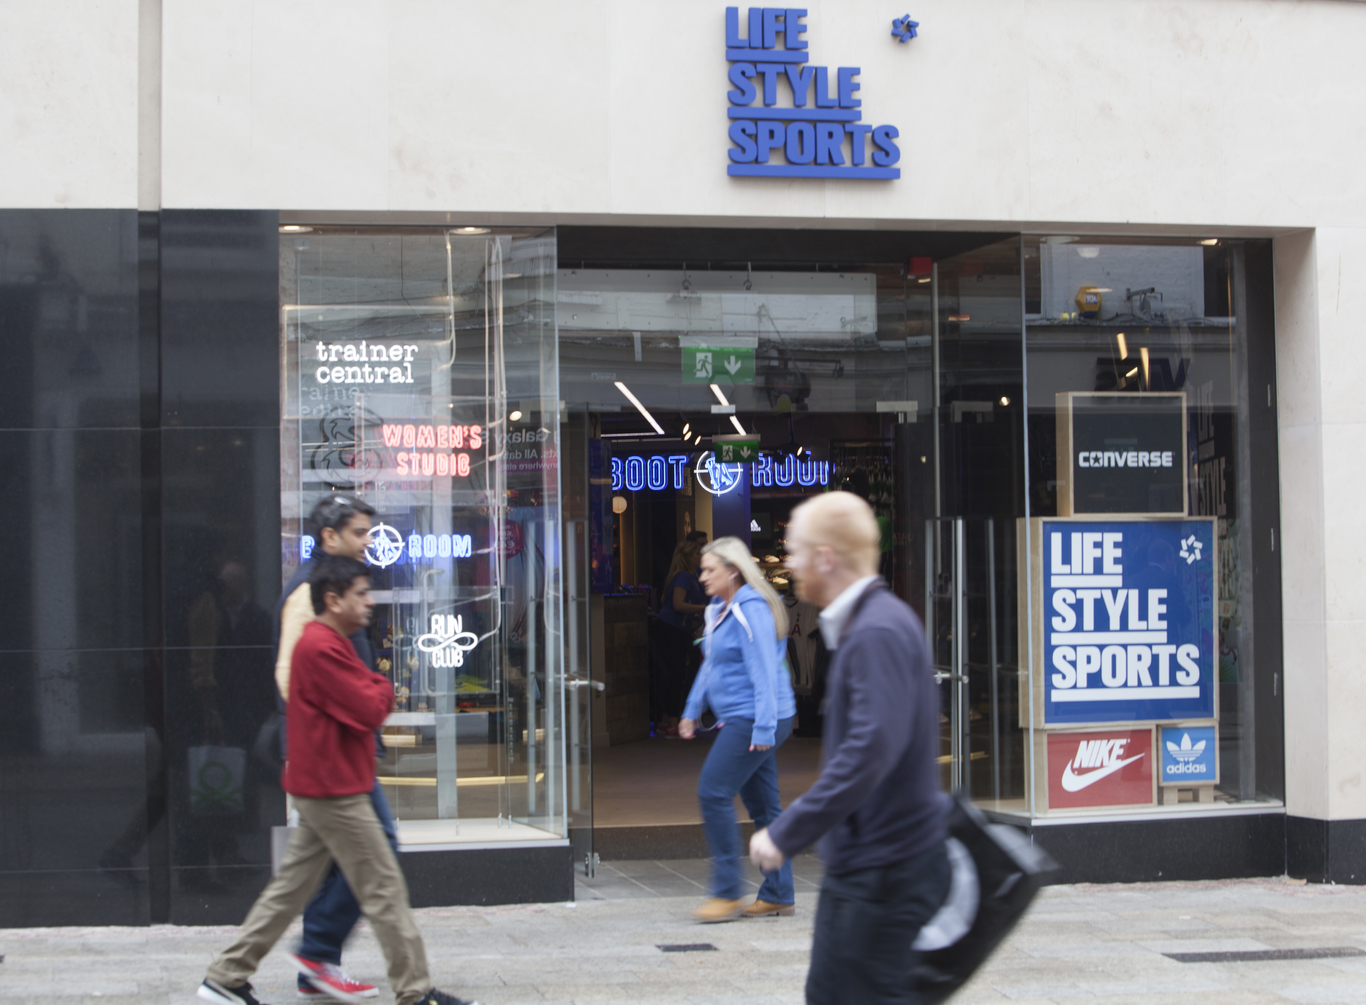 ecf8babe6c7ff After opting for fewer but bigger stores, Life Style Sports has managed to  stay in the black